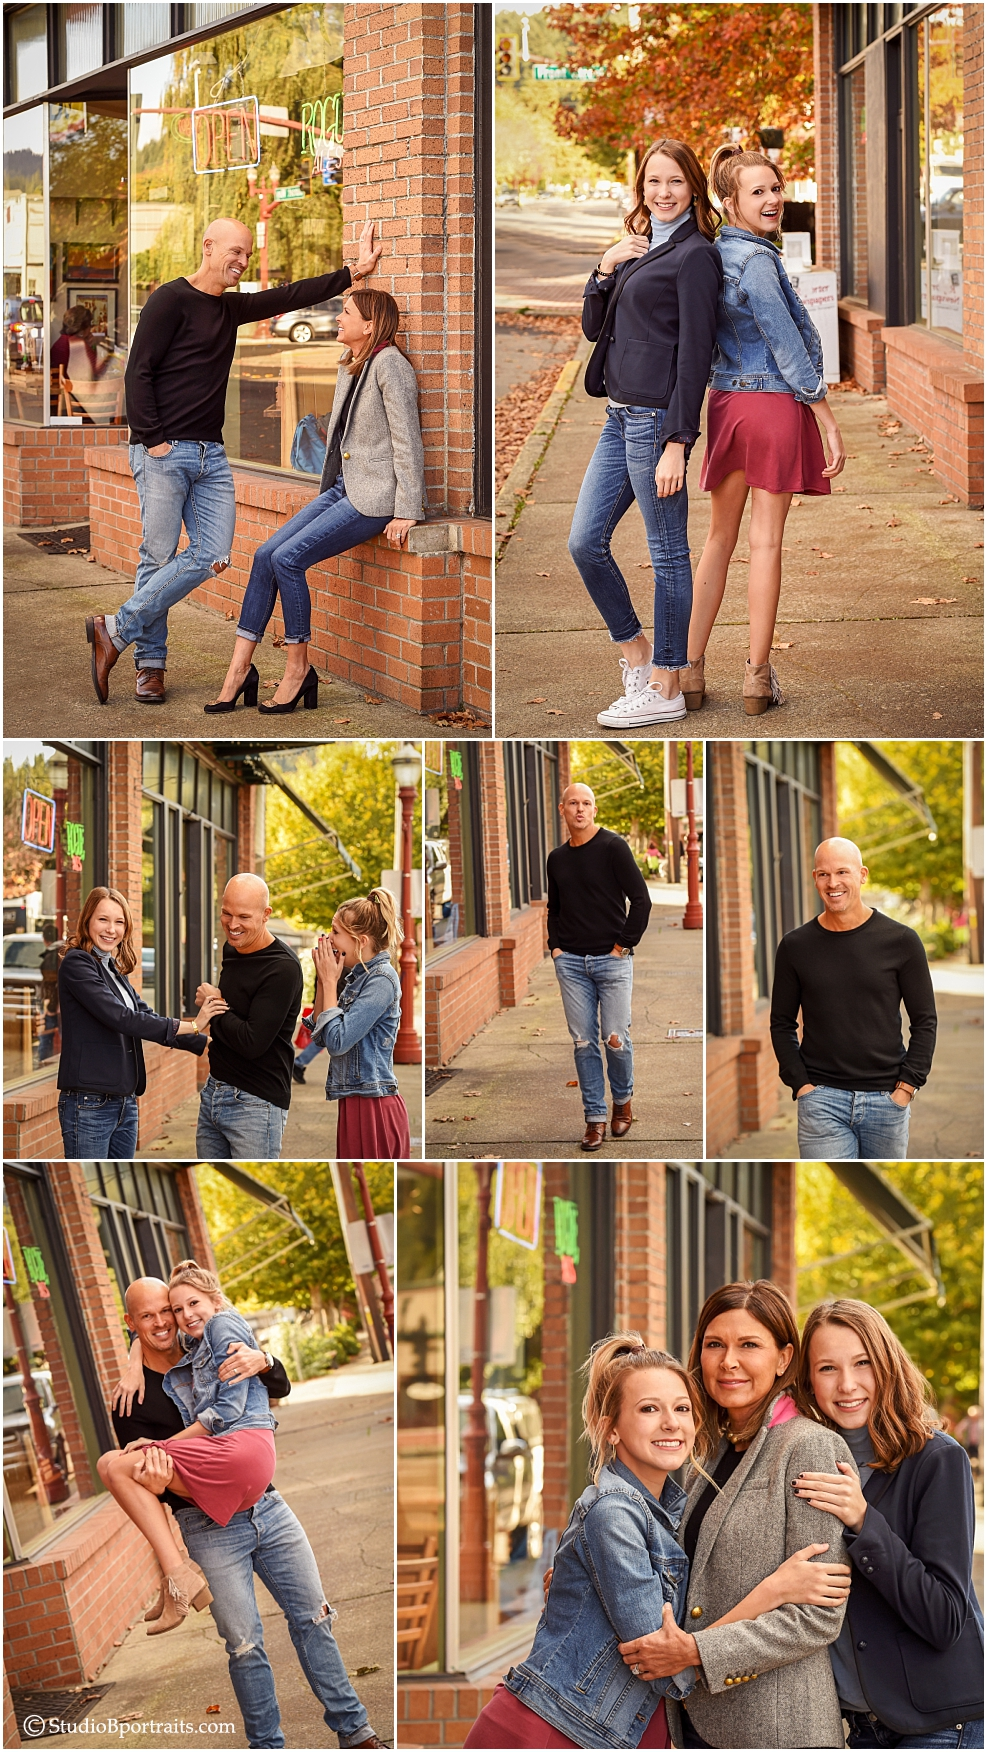 Upscale urban family portraits